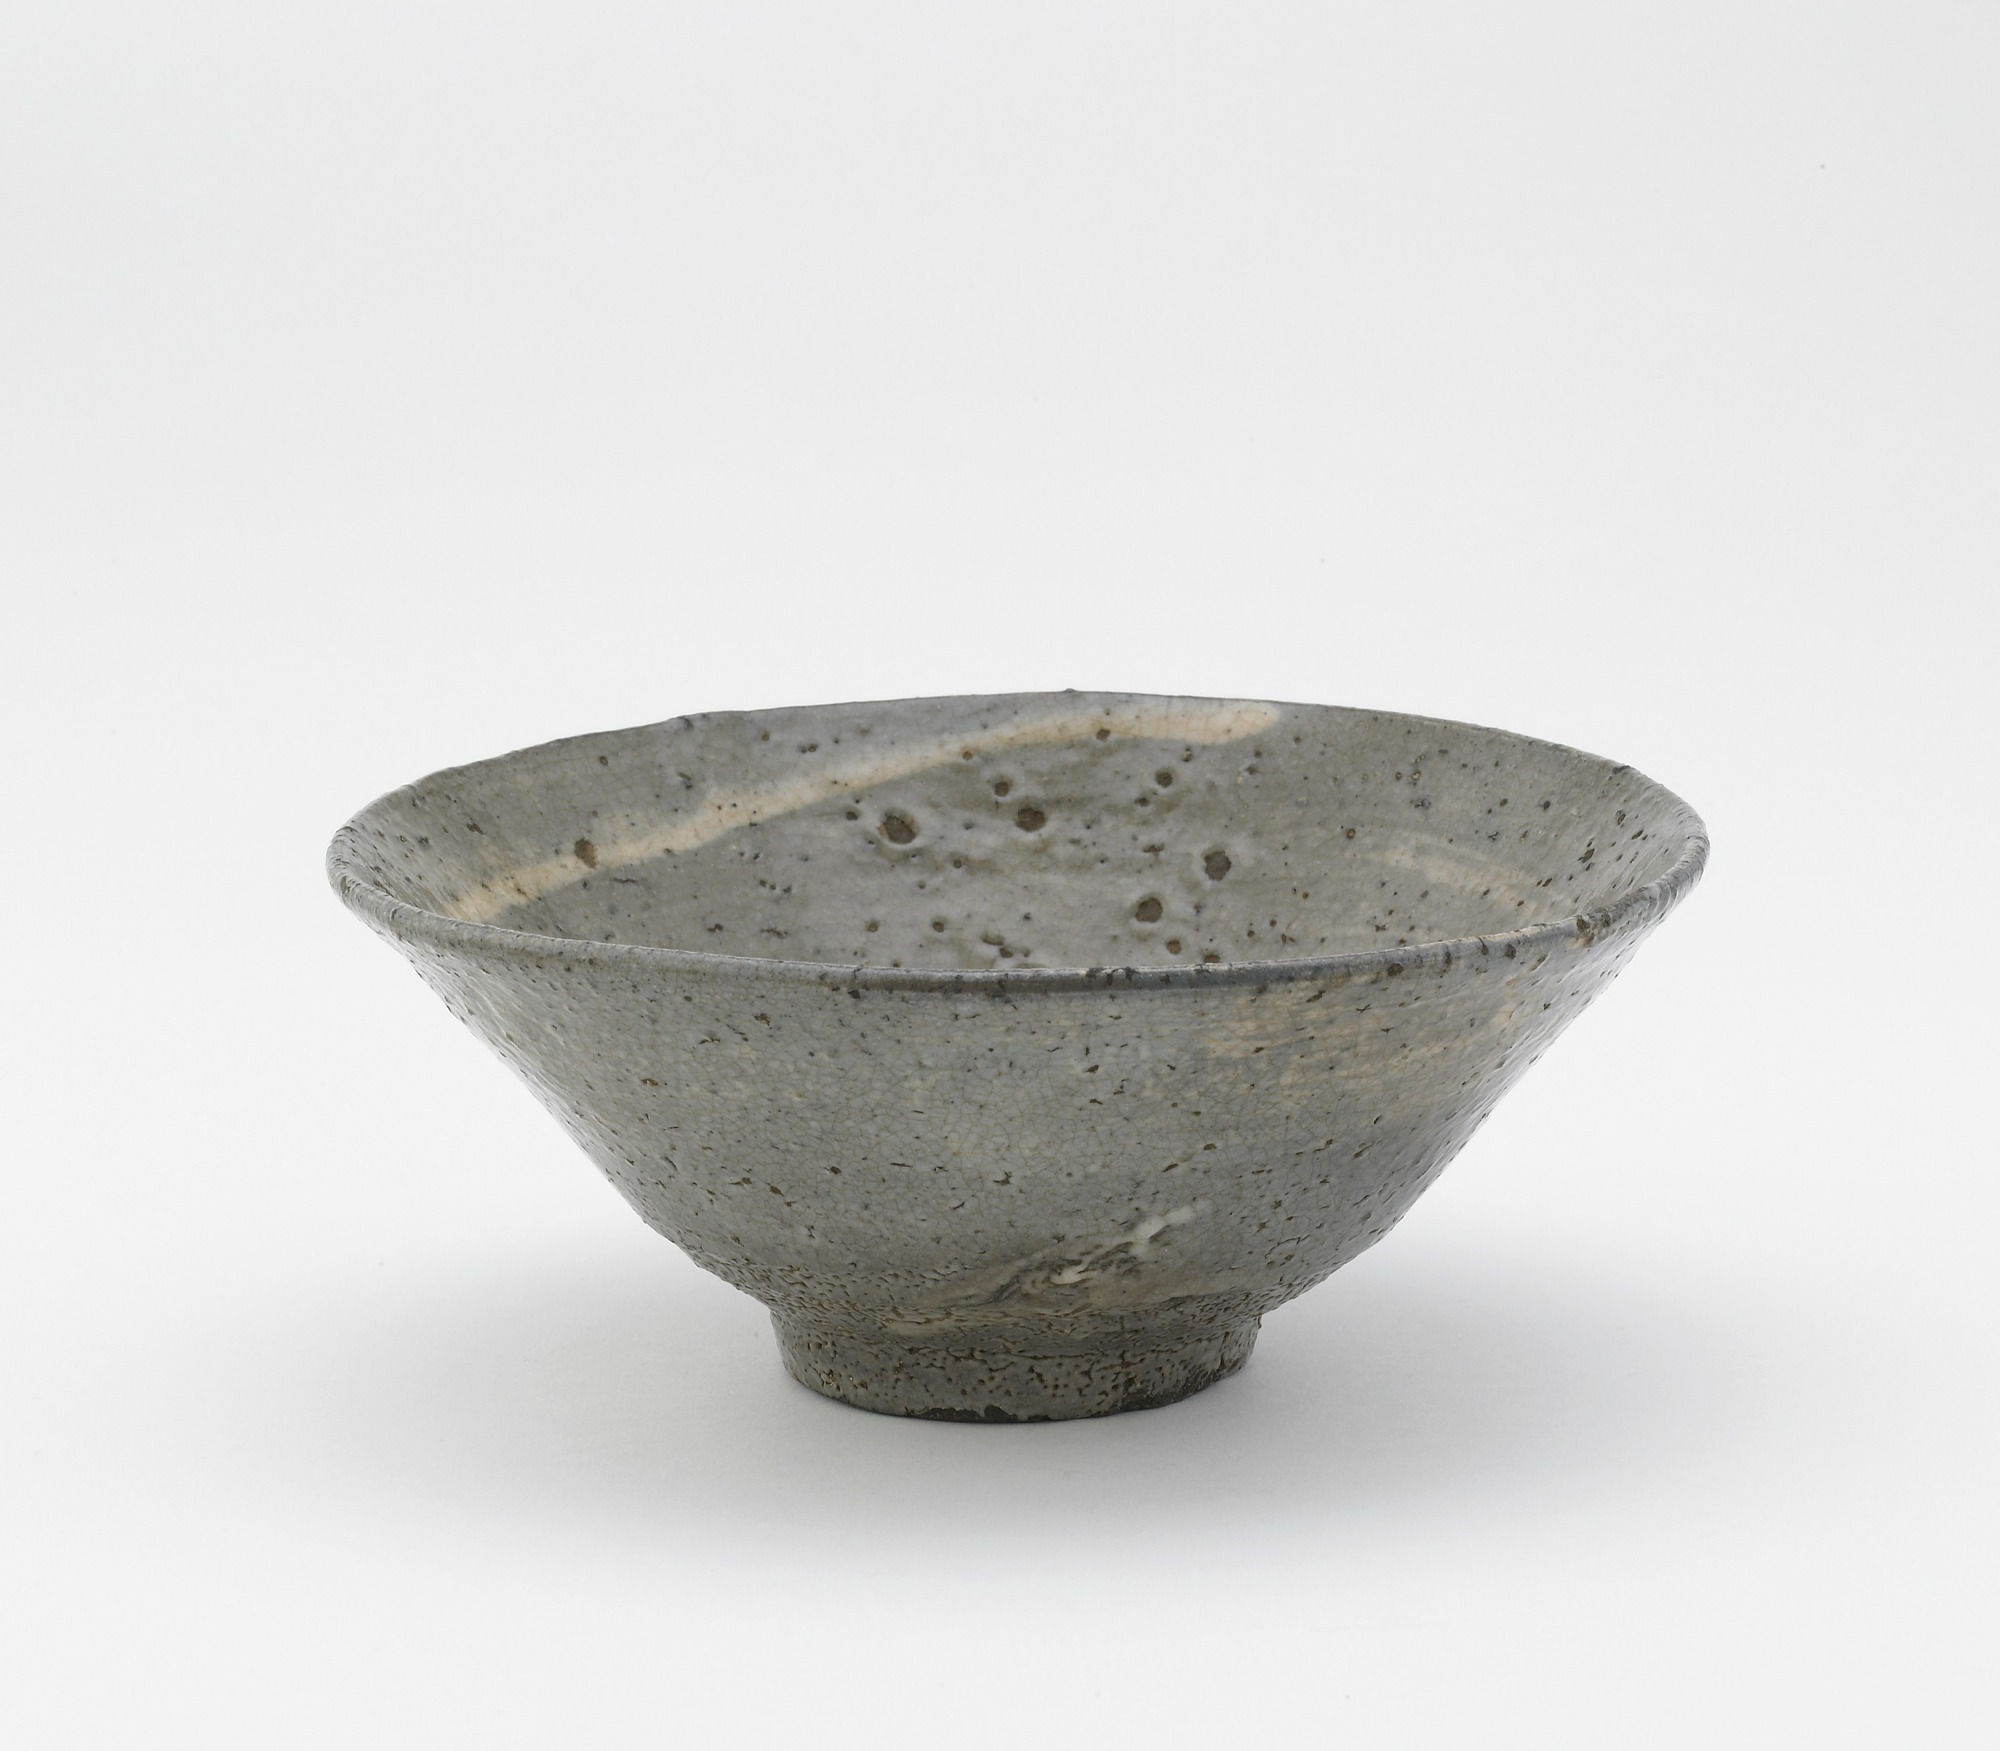 Tea bowl, Totoya type, profile